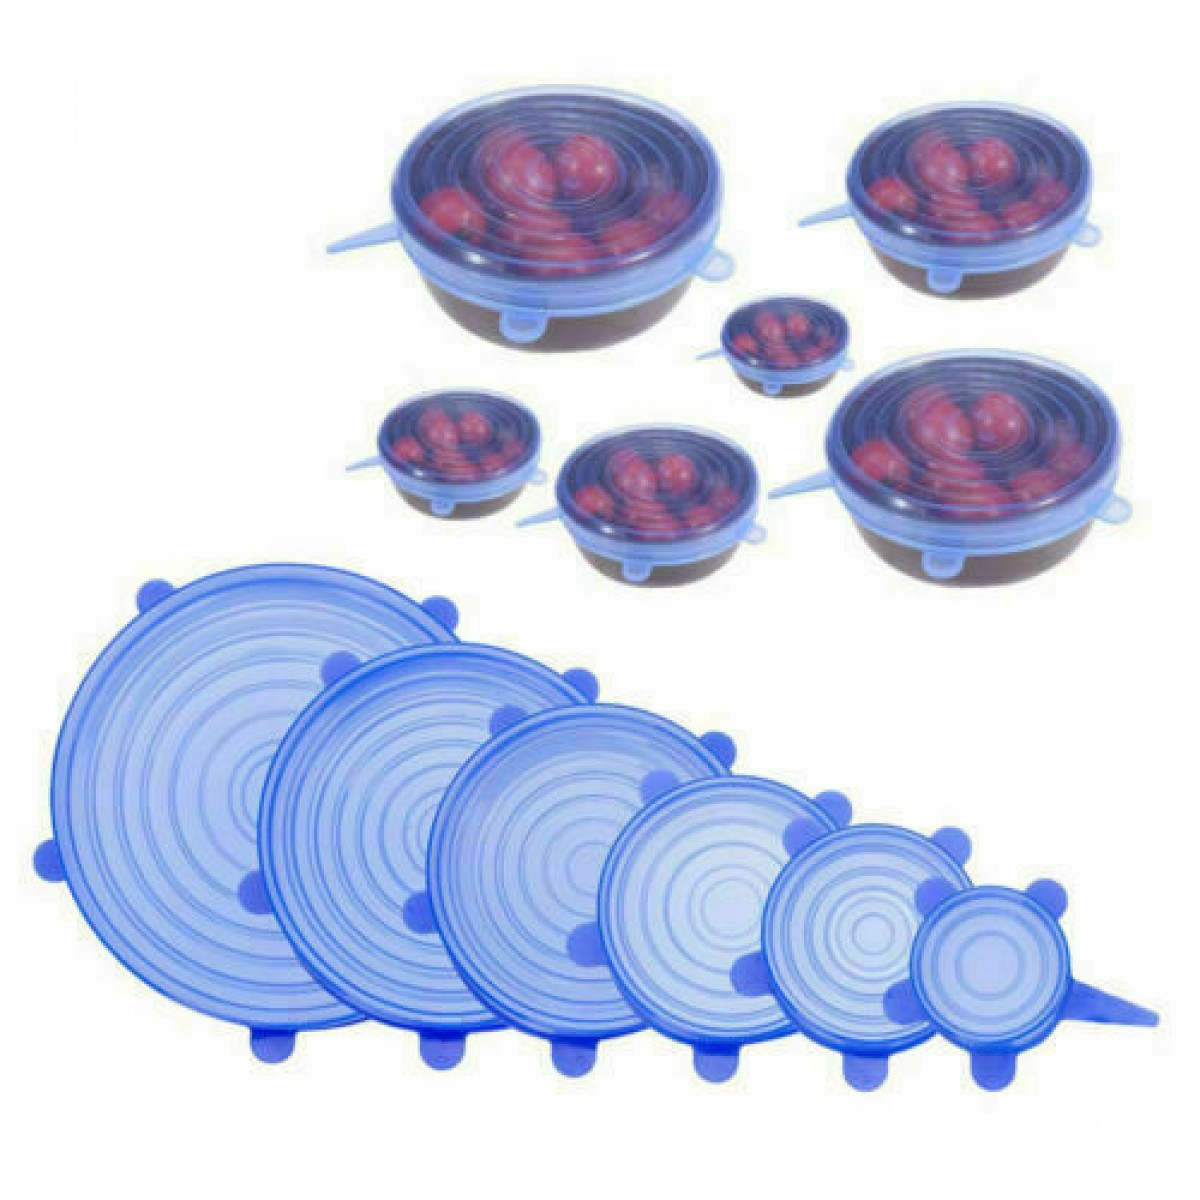 Super Stretch Silicon Lids ( 6 pack ) Rinse & Re-use